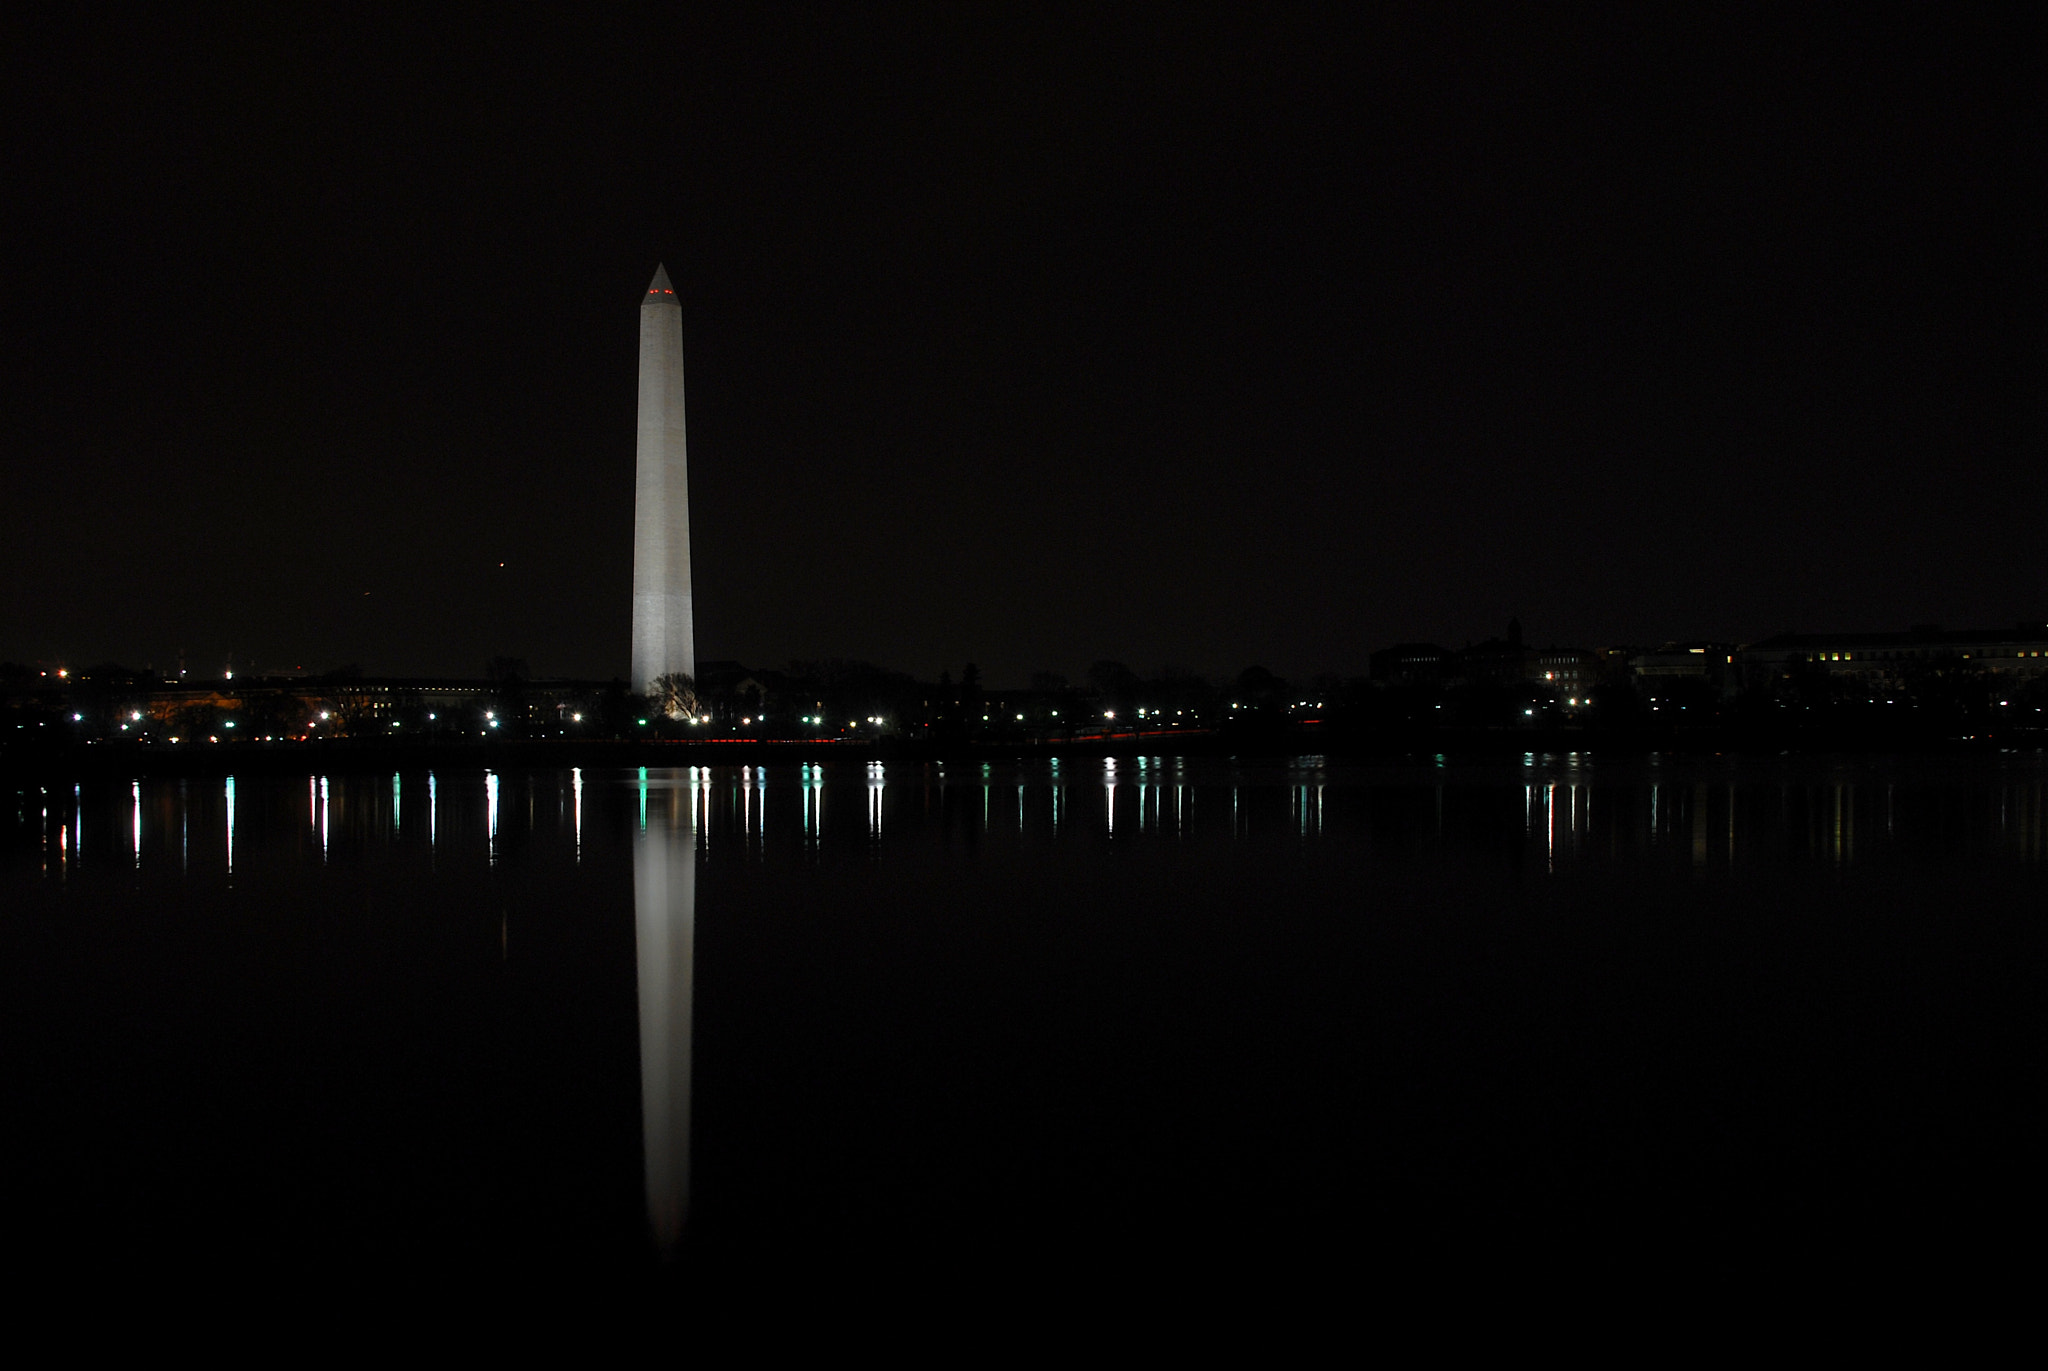 Photograph Washington Monument at Night by Airman Michael on 500px